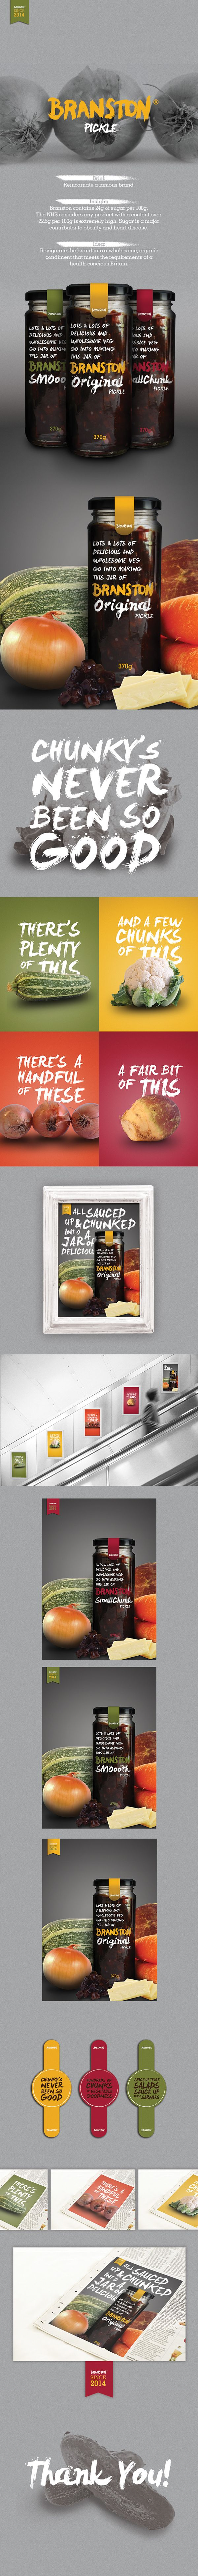 Love the visual descriptions of what is in the pickle - DesignBridge 2014 Branston Pickle on Behance